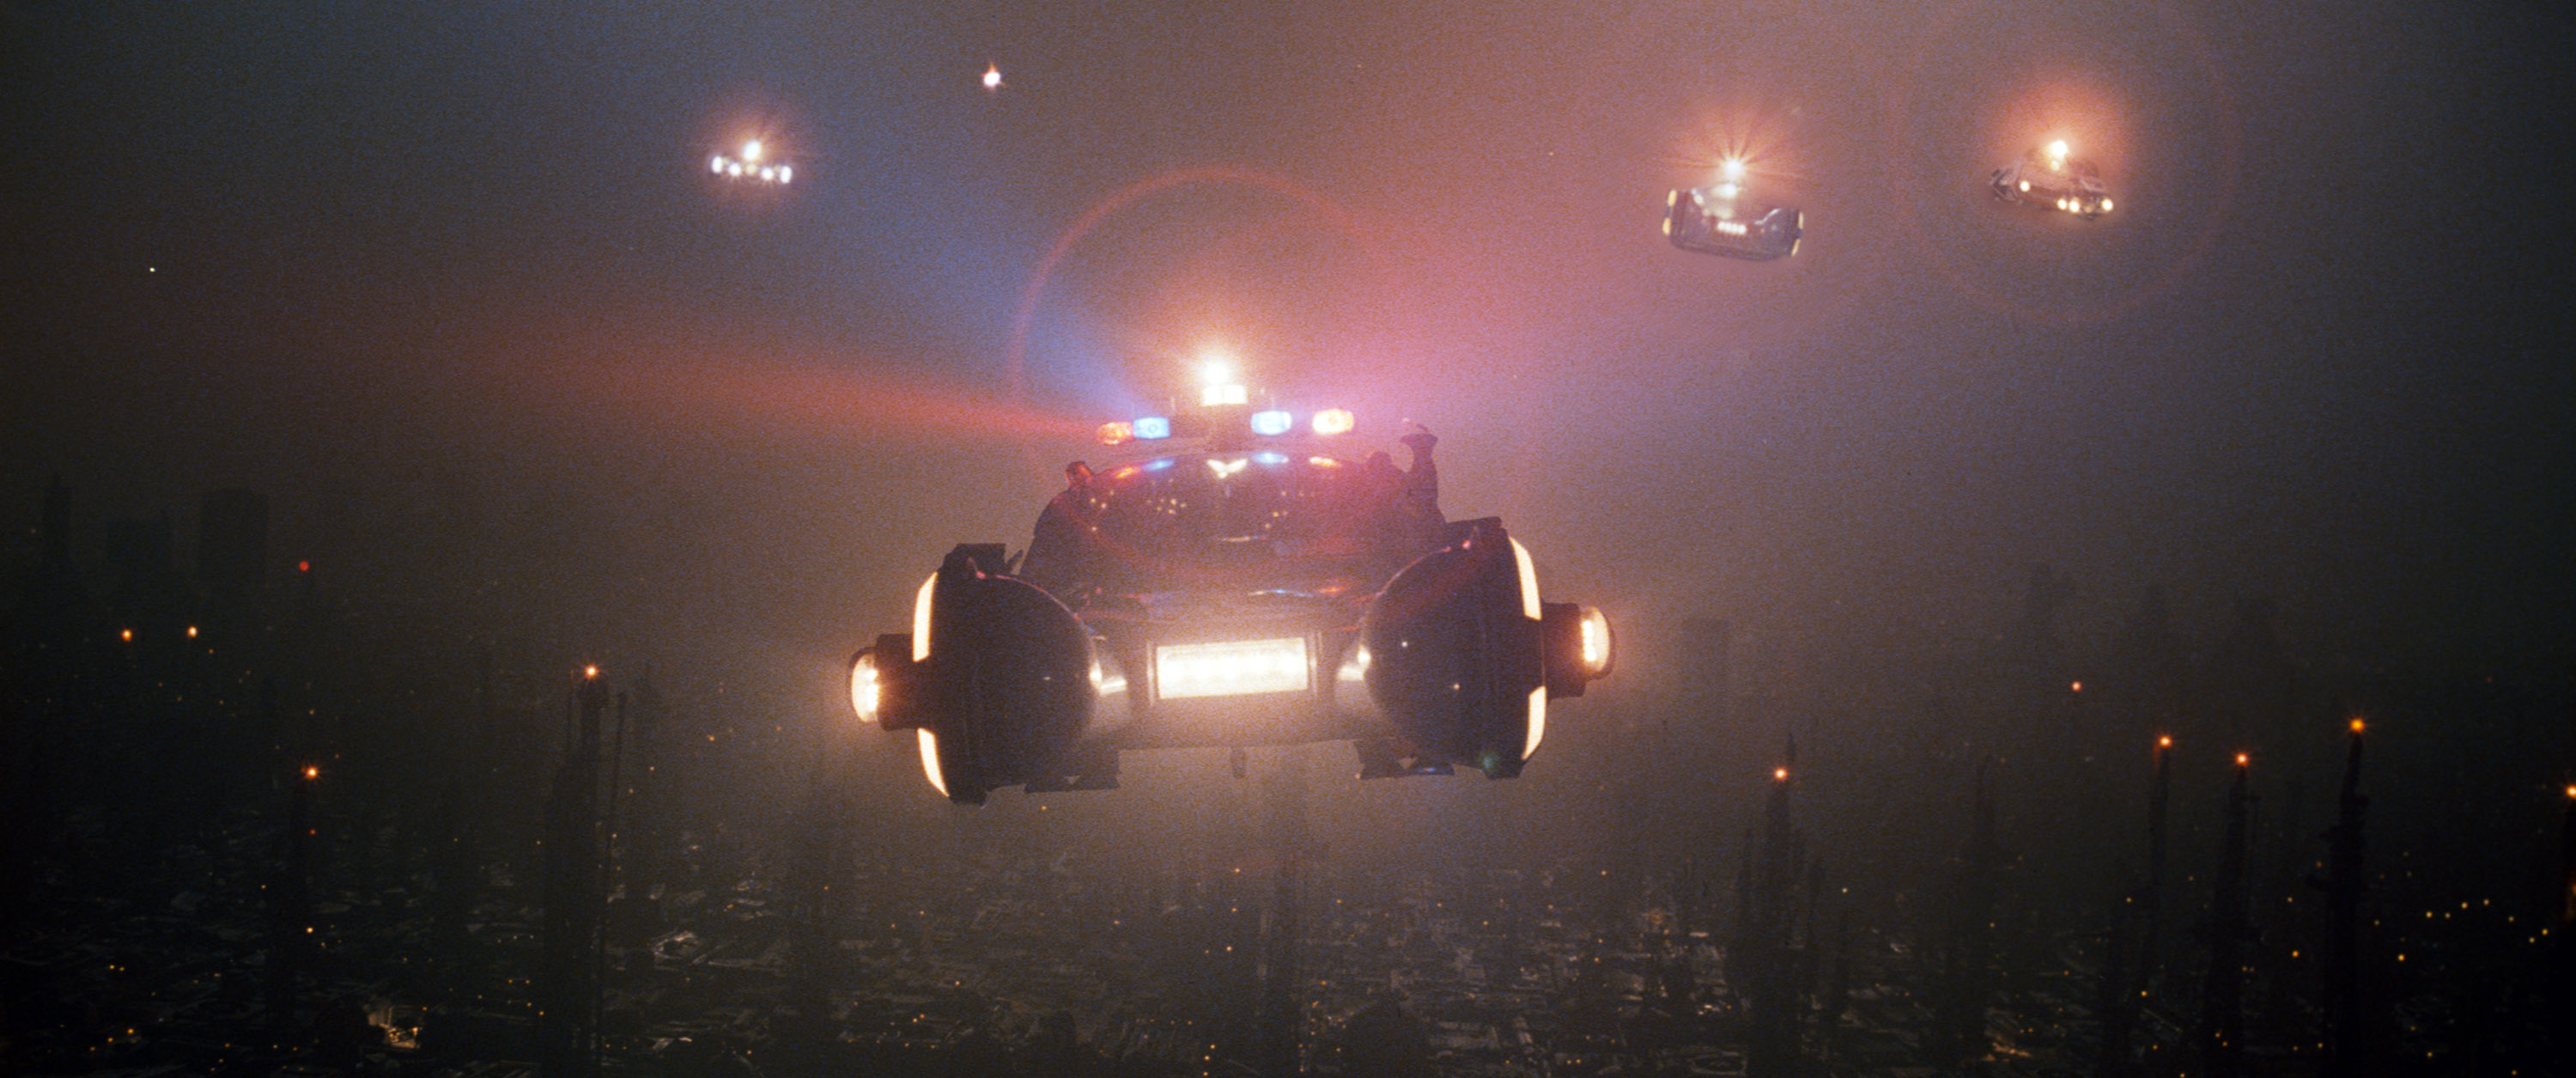 Blade Runner Wallpaper 3000x1255 Blade Runner 3000x1255